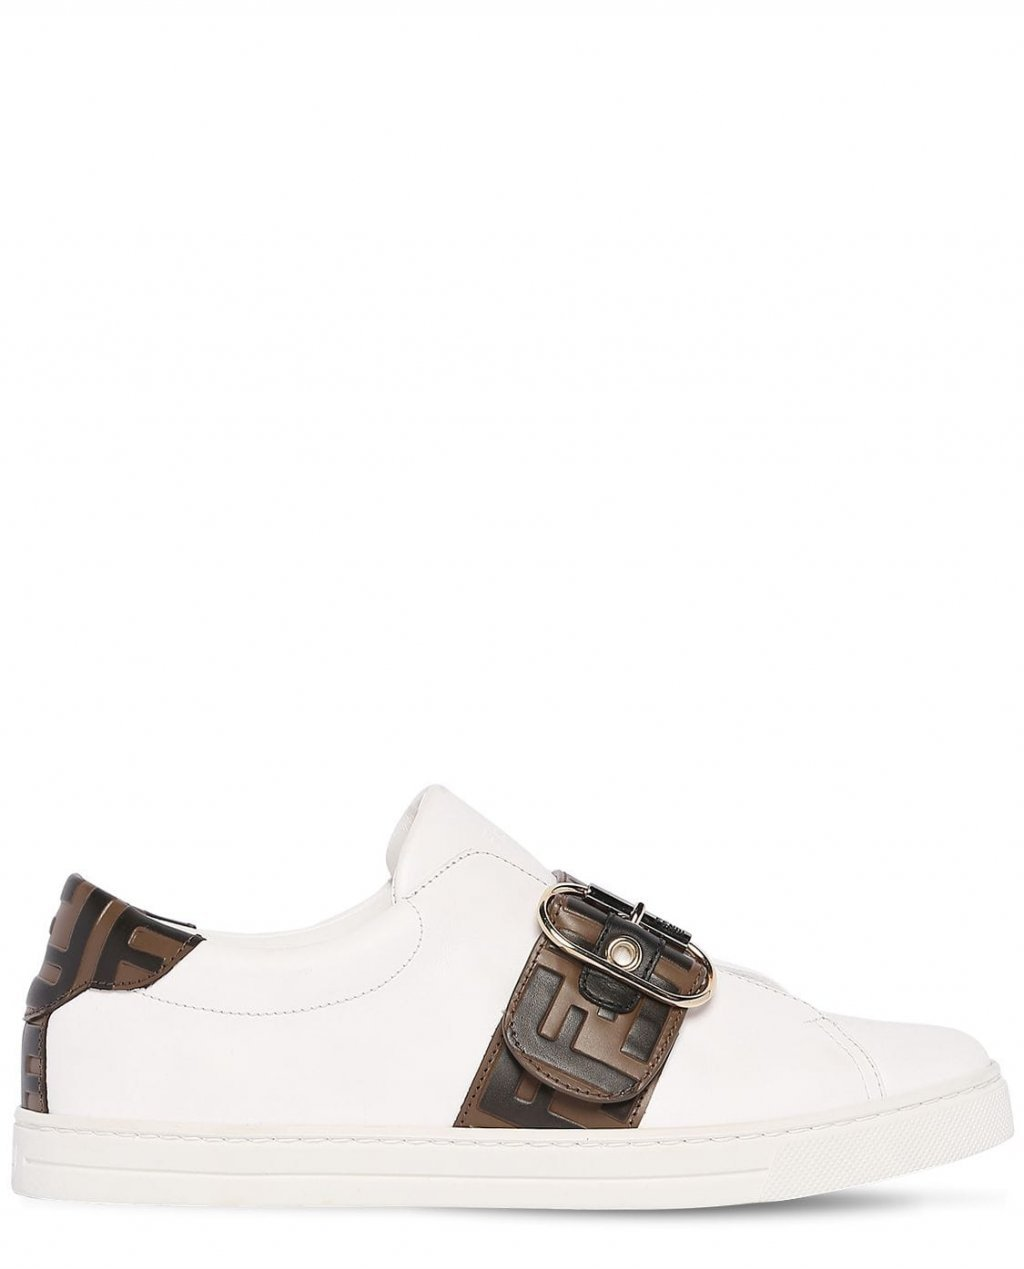 Fendi Logo Buckled Leather Sneakers